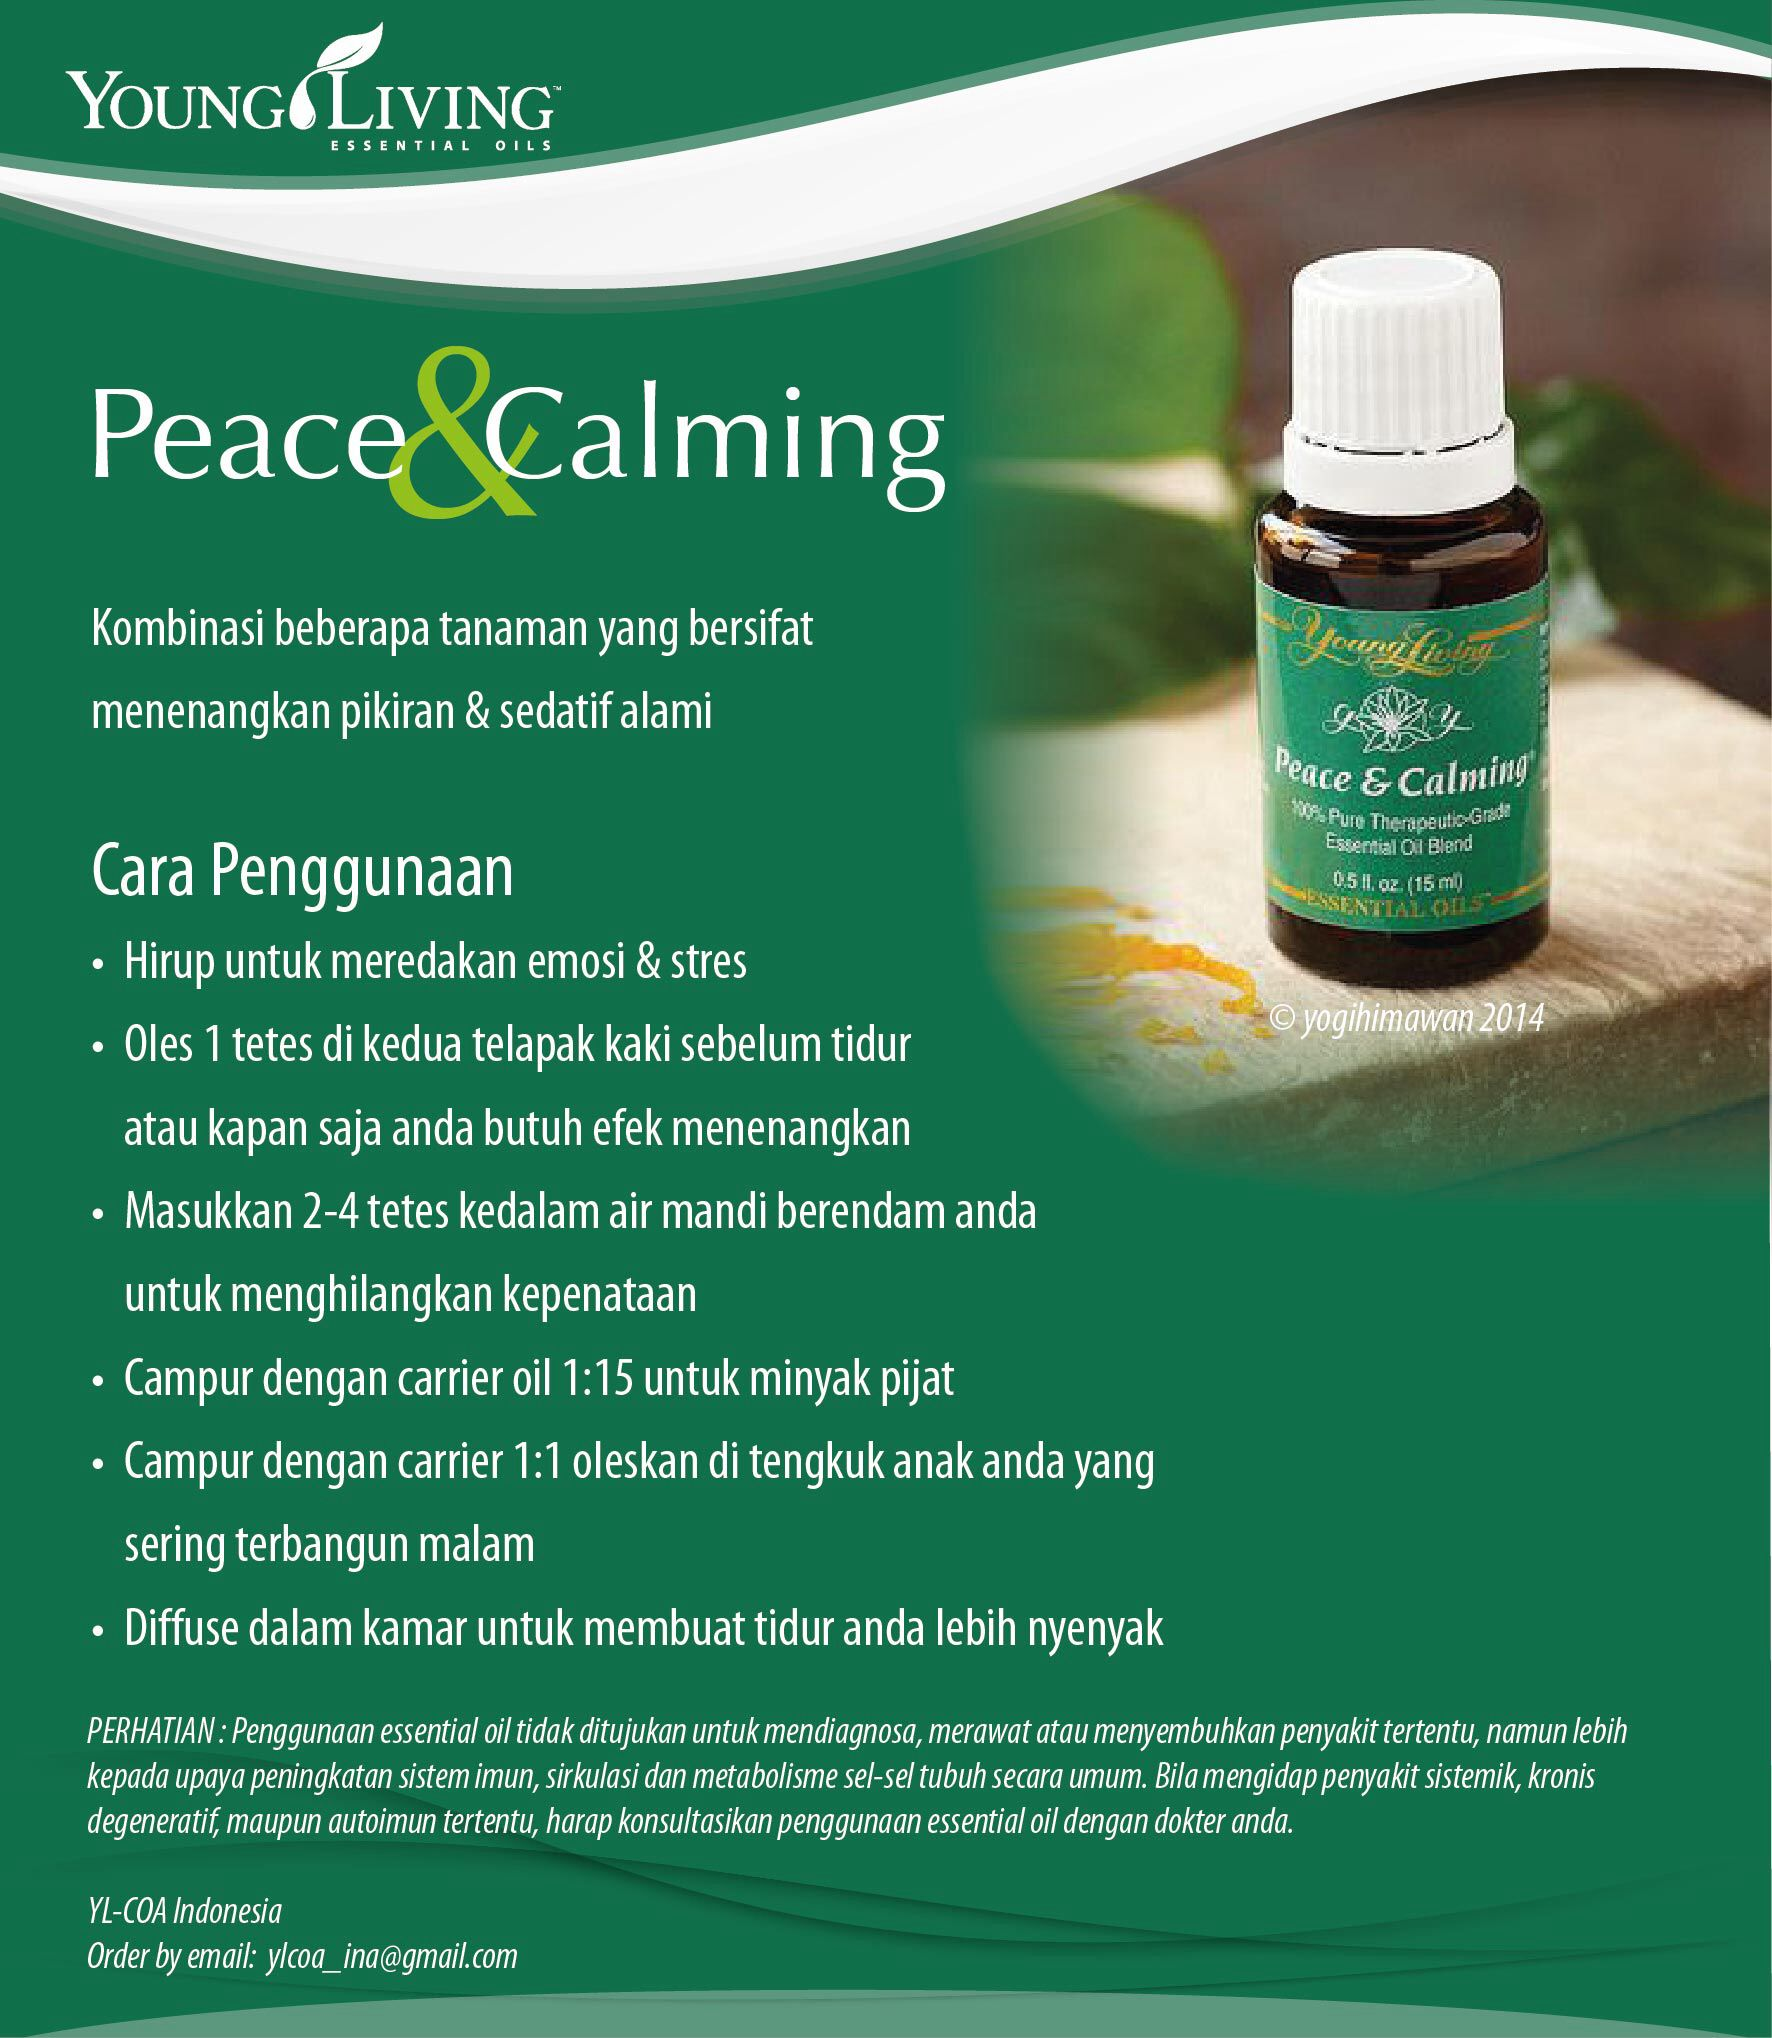 katalogEO Everyday oils kit Peace and Calming Young